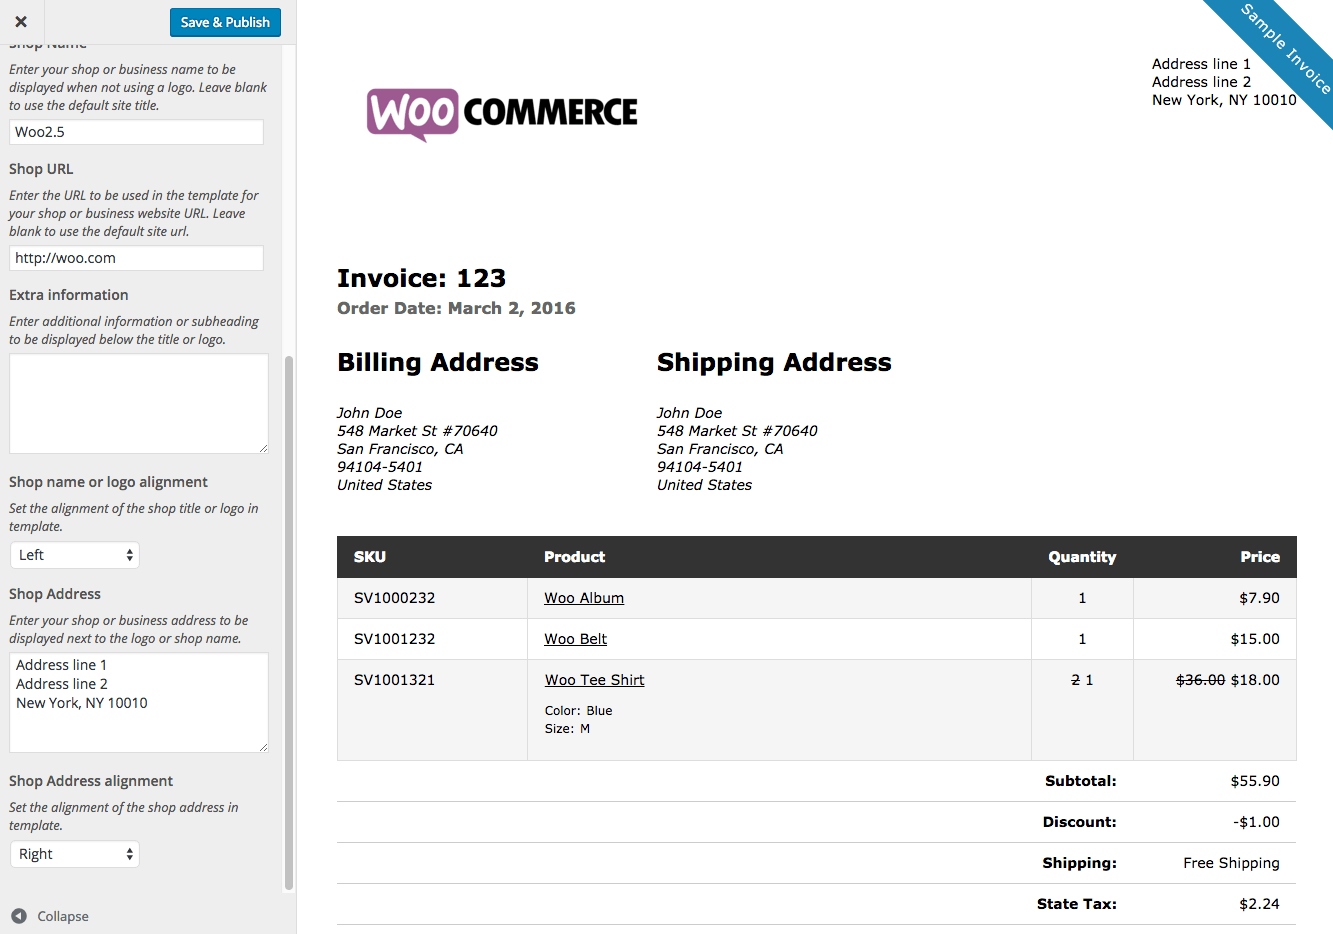 Howcanigettallerus  Ravishing Woocommerce Print Invoices Amp Packing Lists  Woocommerce Docs With Fair Woocommerce Print Invoices  Packing Lists Customizer With Cute What Is Factory Invoice Also Profarma Invoice In Addition Rental Invoice Template And Invoice Generator Free As Well As Invoice Software For Pc Additionally Express Invoice Free From Docswoocommercecom With Howcanigettallerus  Fair Woocommerce Print Invoices Amp Packing Lists  Woocommerce Docs With Cute Woocommerce Print Invoices  Packing Lists Customizer And Ravishing What Is Factory Invoice Also Profarma Invoice In Addition Rental Invoice Template From Docswoocommercecom